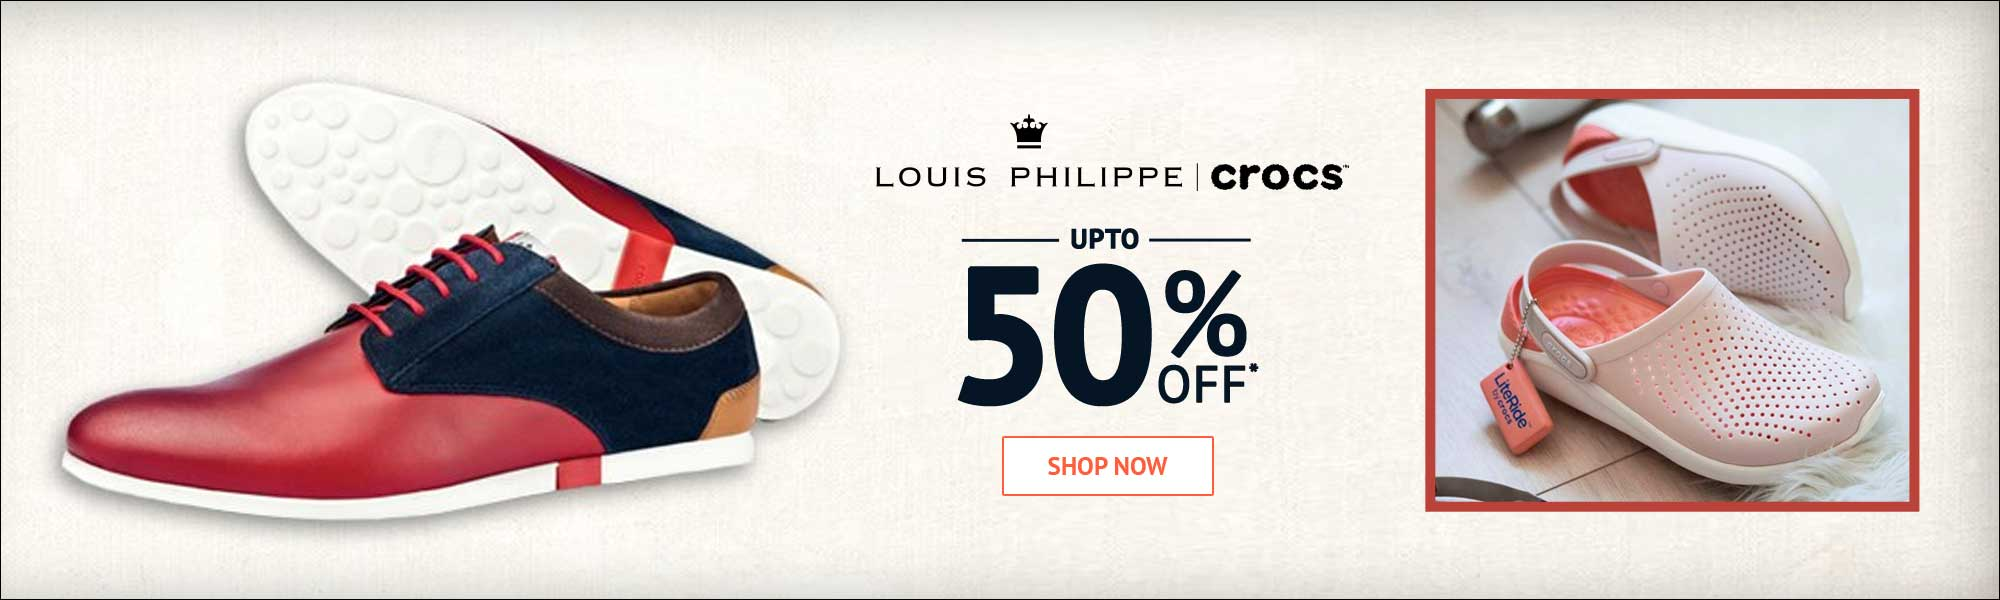 louis ohilippe croce offer